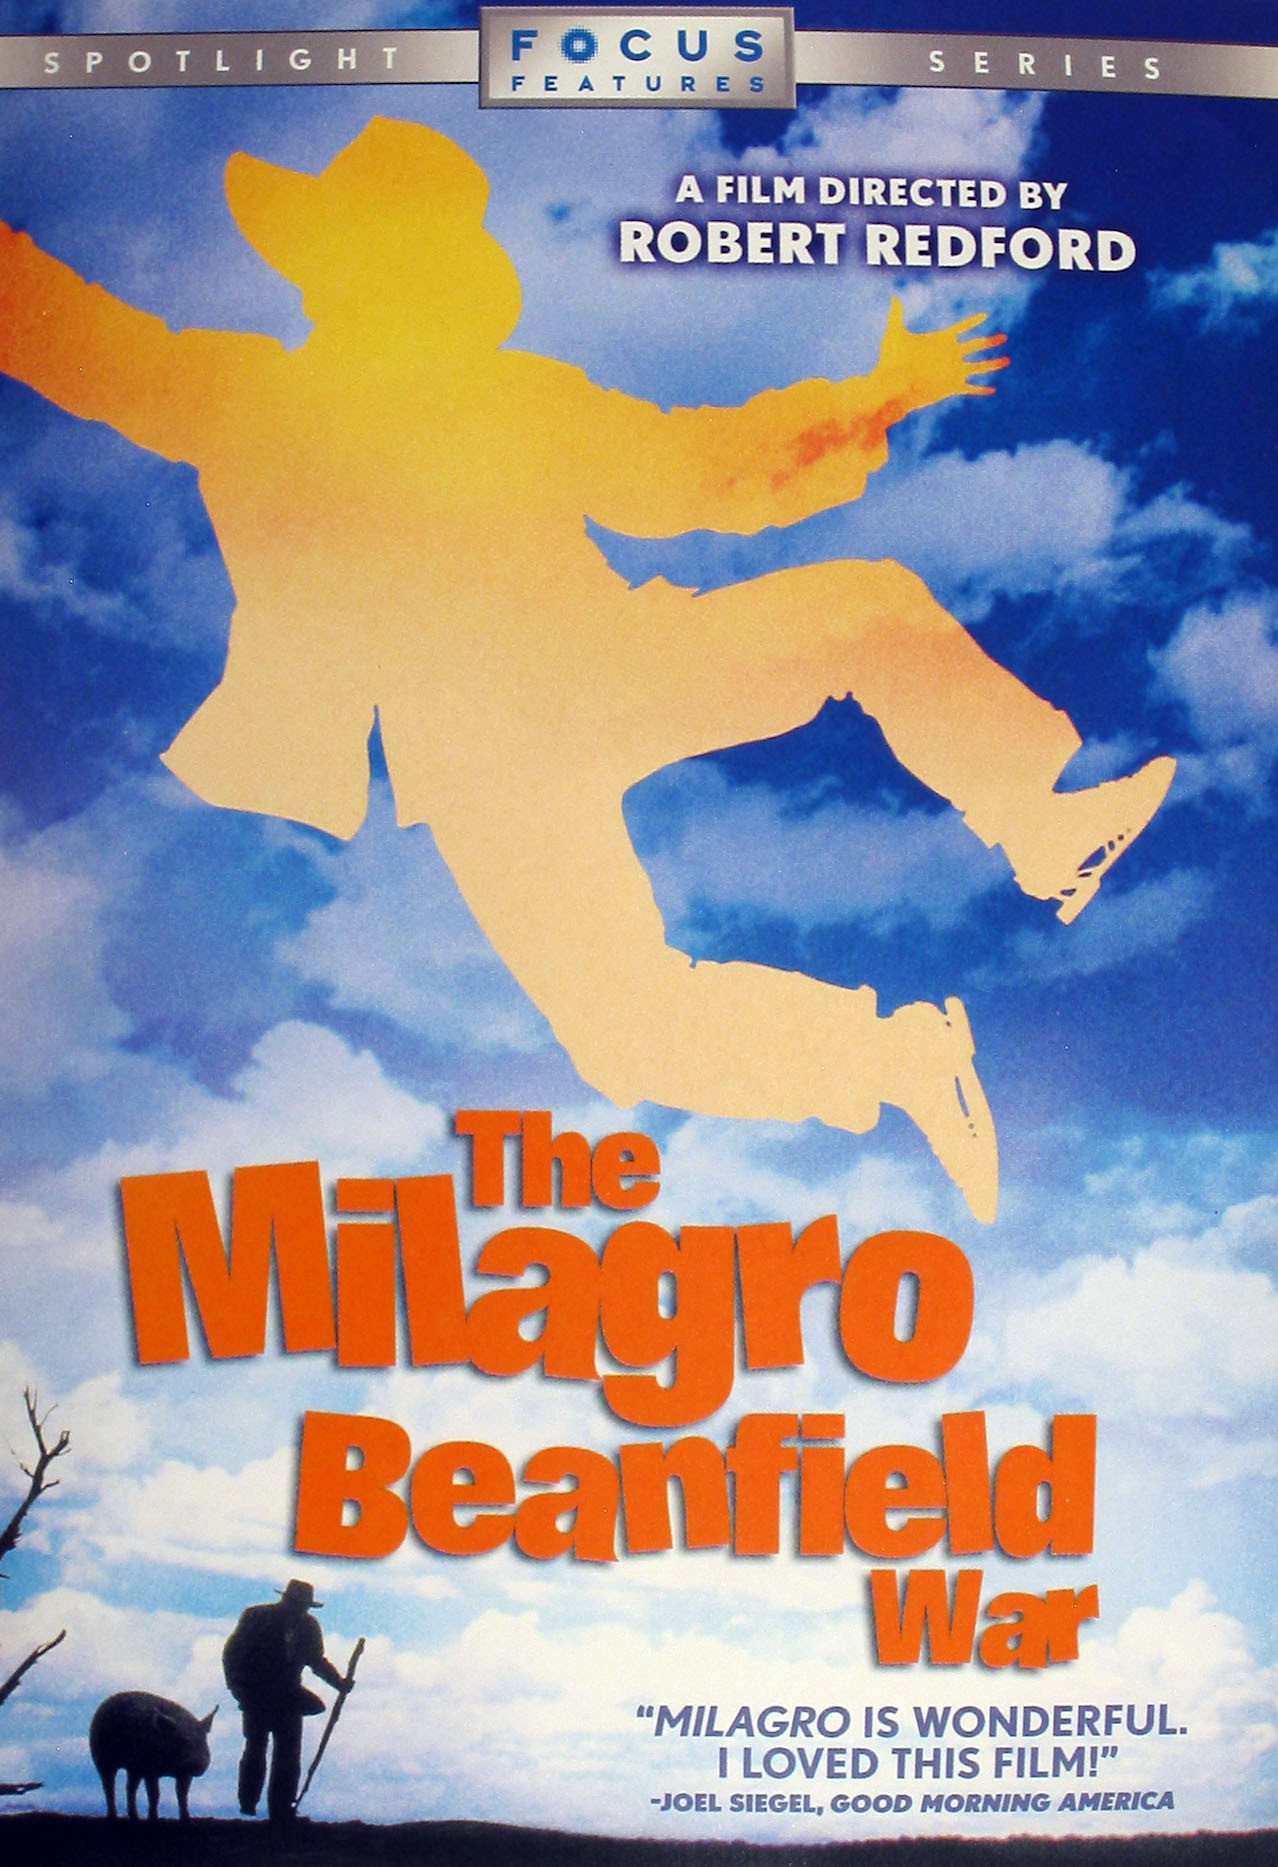 milagro beanfield war The milagro beanfield war is the 1988 film adaptation of the titular first novel written by john nichols itself the first of a trilogy robert redford handled direction for the film while author john nichols, as well as david ward, penned its screenplay notable actors within the film include .